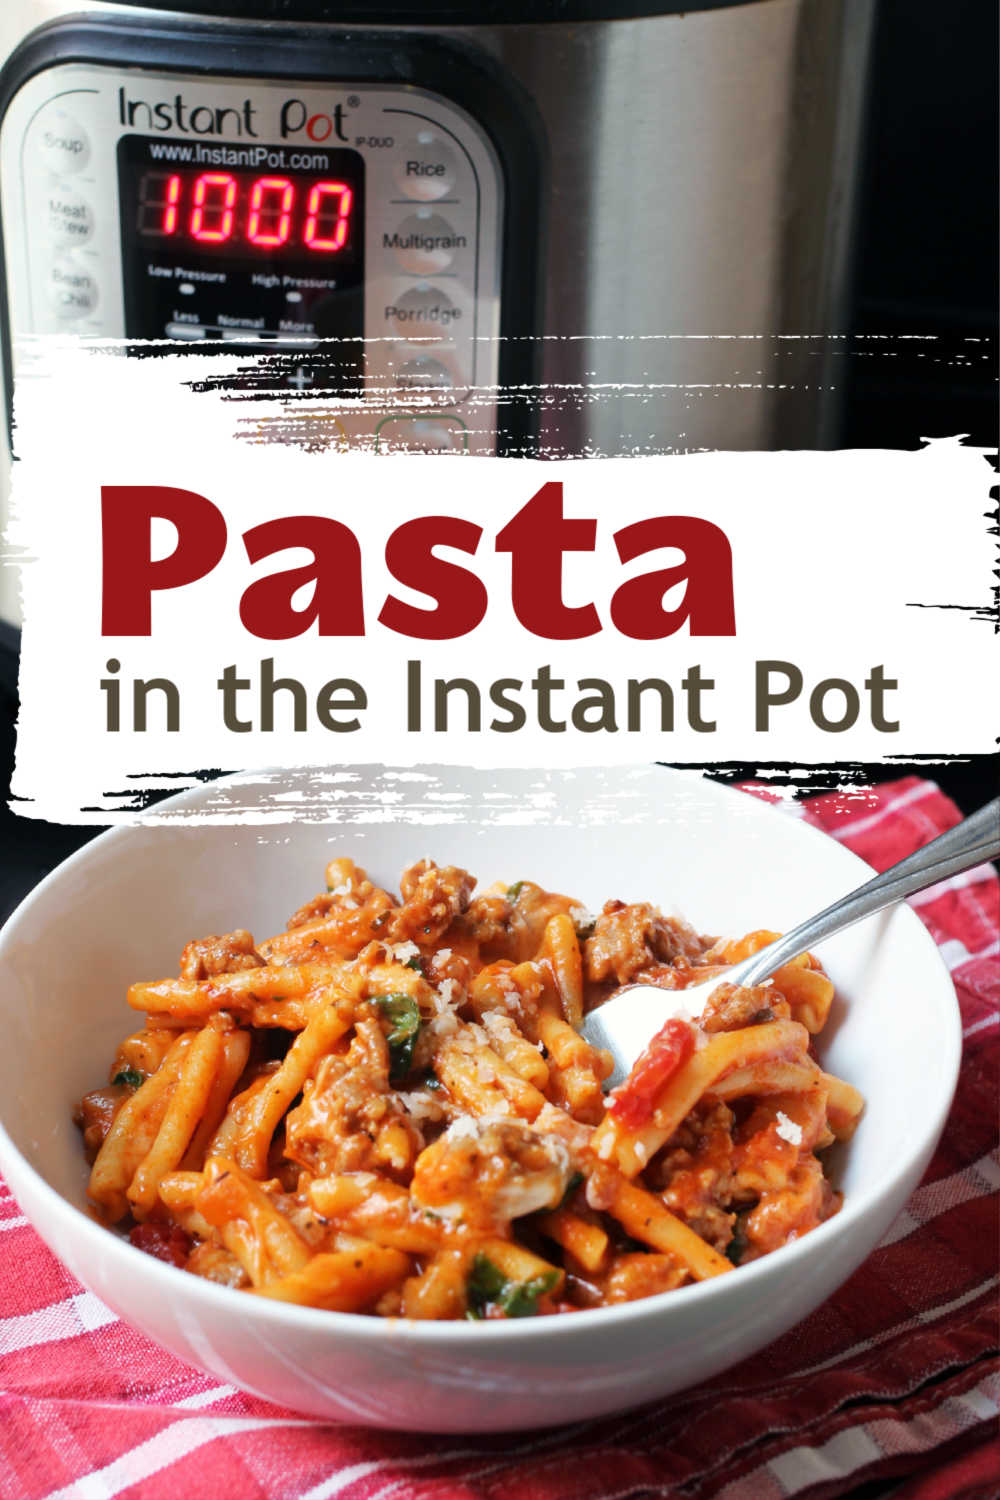 Pasta in the Instant Pot